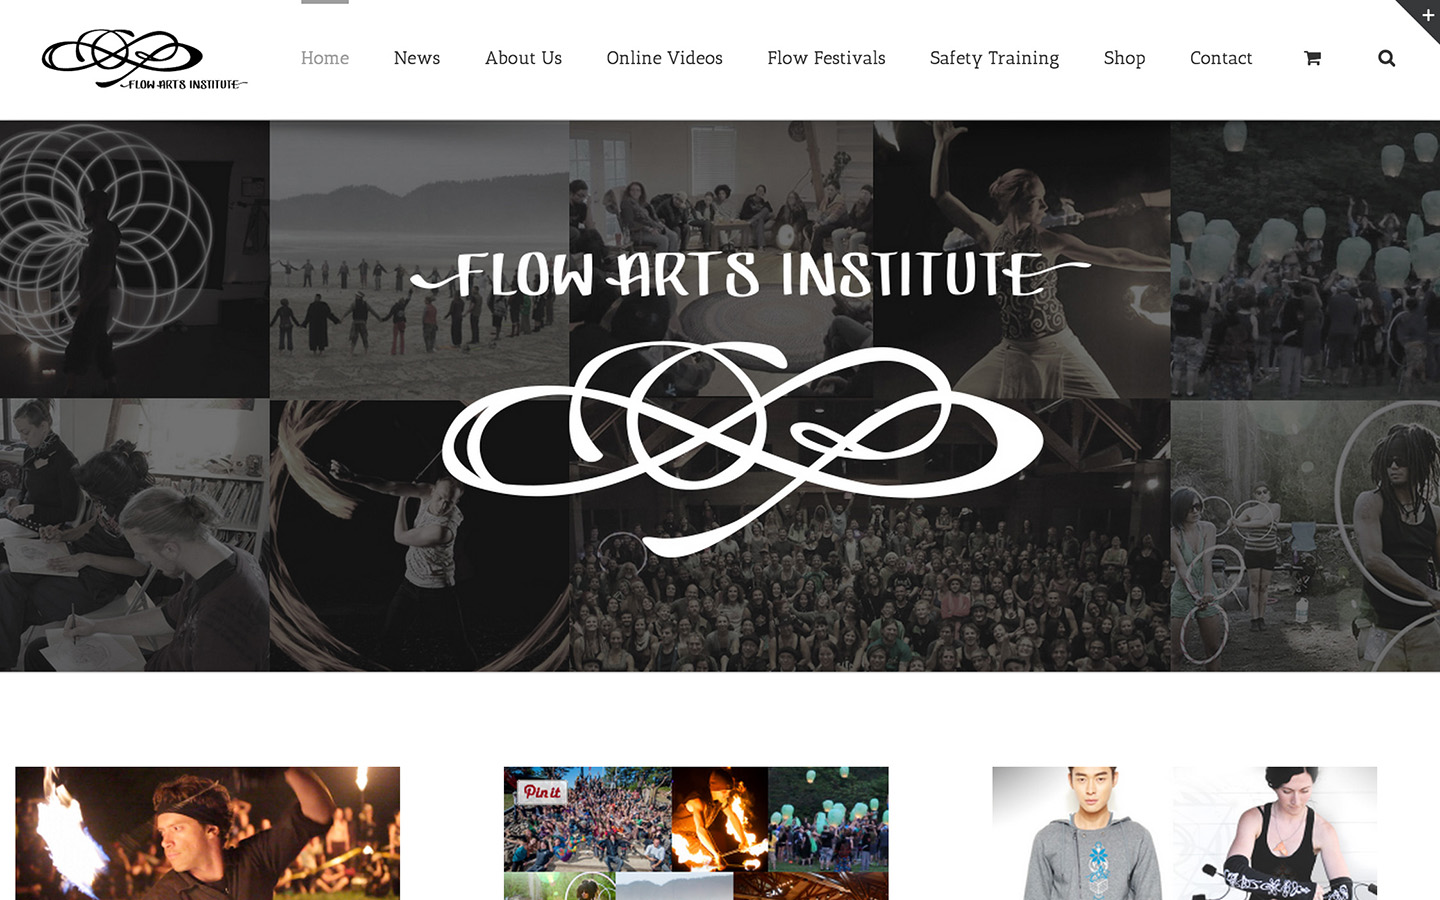 Flow Arts Institute Home Page